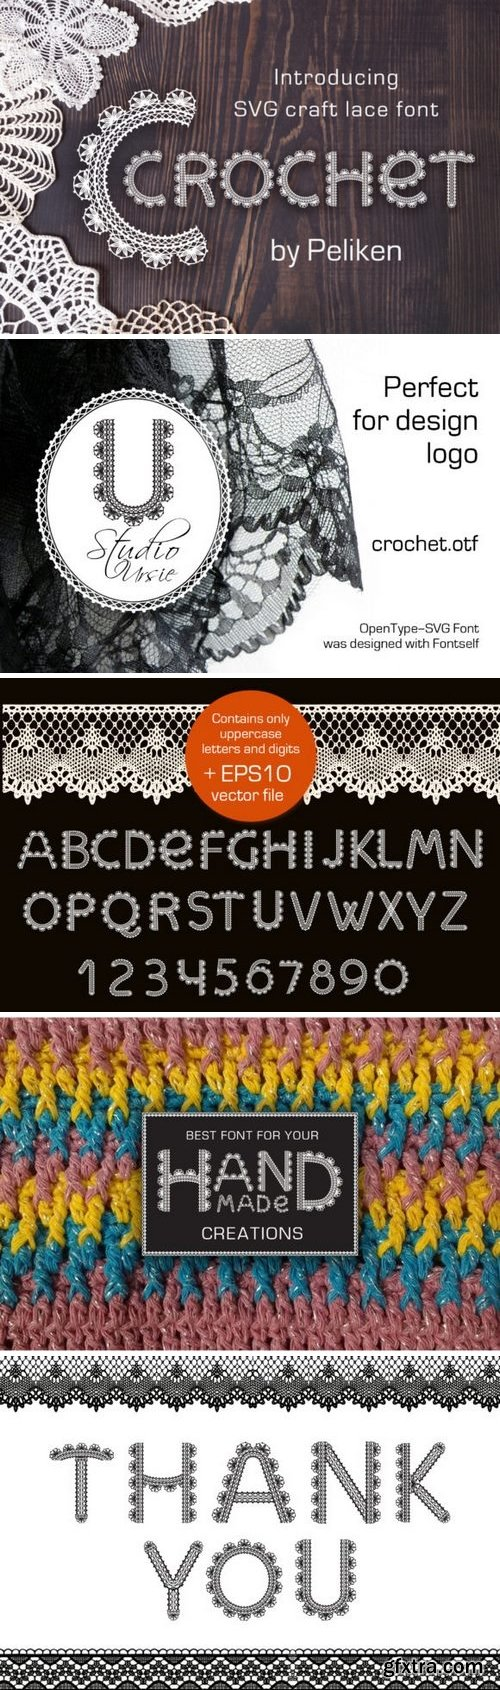 Fontbundles - Crochet - svg craft lace font 188683